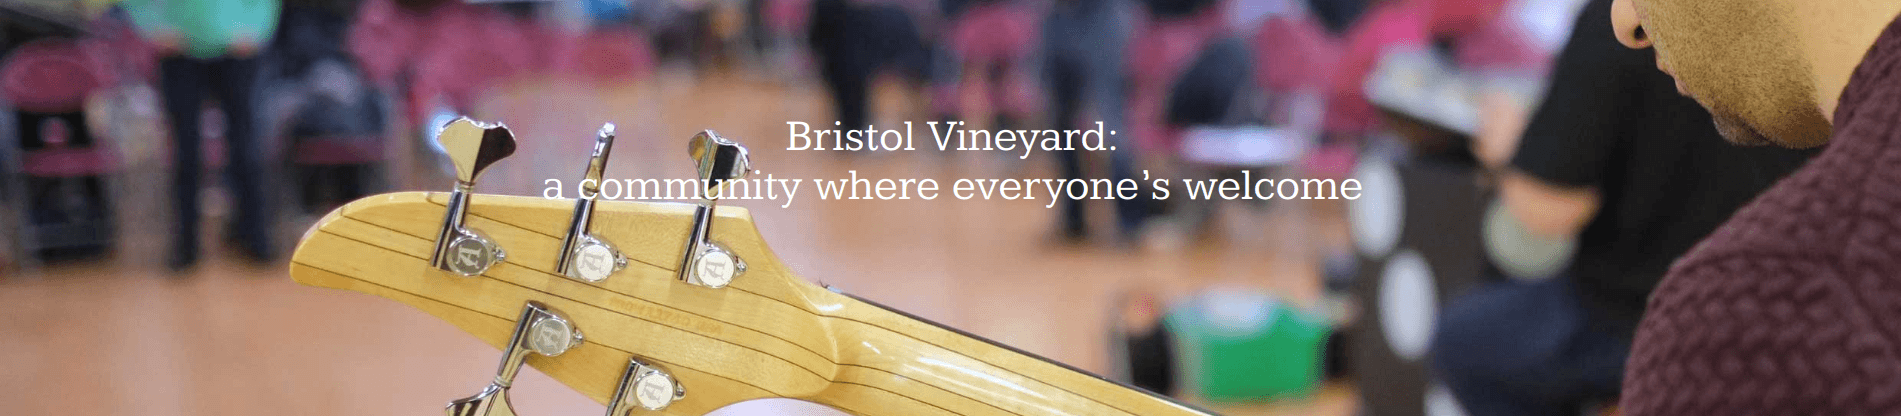 Bristol Vineyard Church